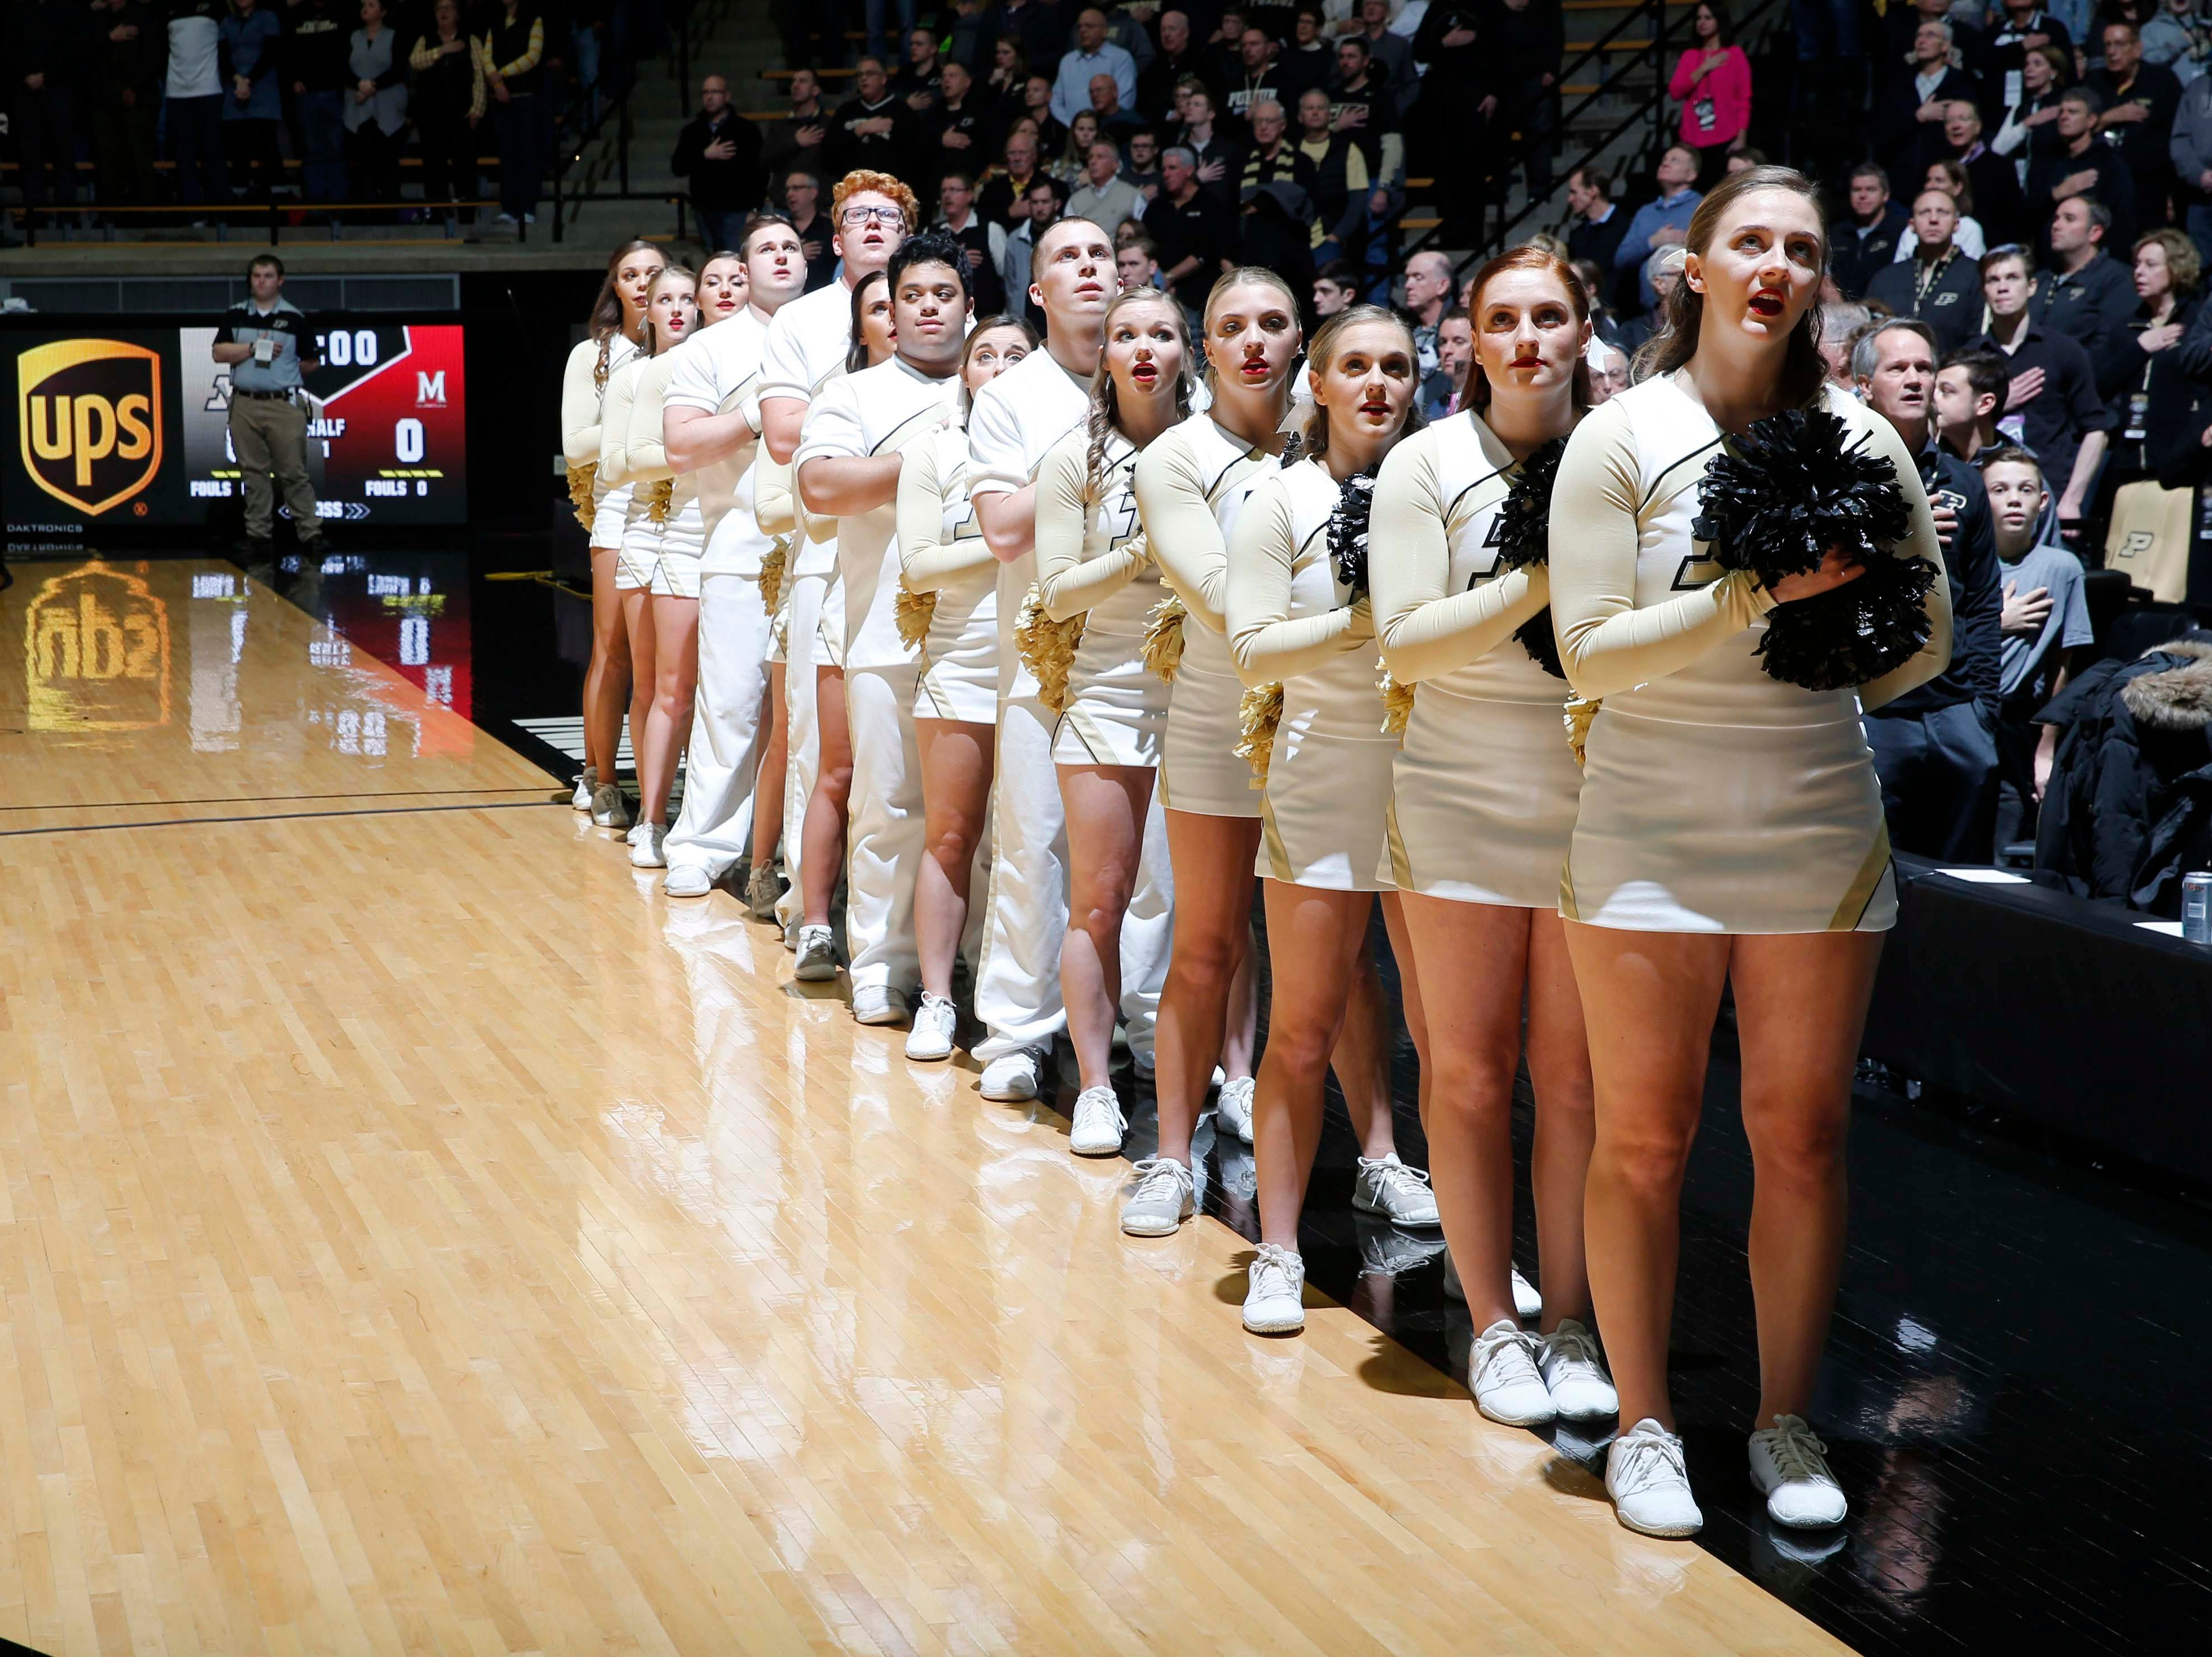 Dec 6, 2018; West Lafayette, IN, USA; Purdue Boilermaker cheerleaders stand at attention during the playing of the National Anthem before the game against the Maryland Terrapins at Mackey Arena. Mandatory Credit: Brian Spurlock-USA TODAY Sports